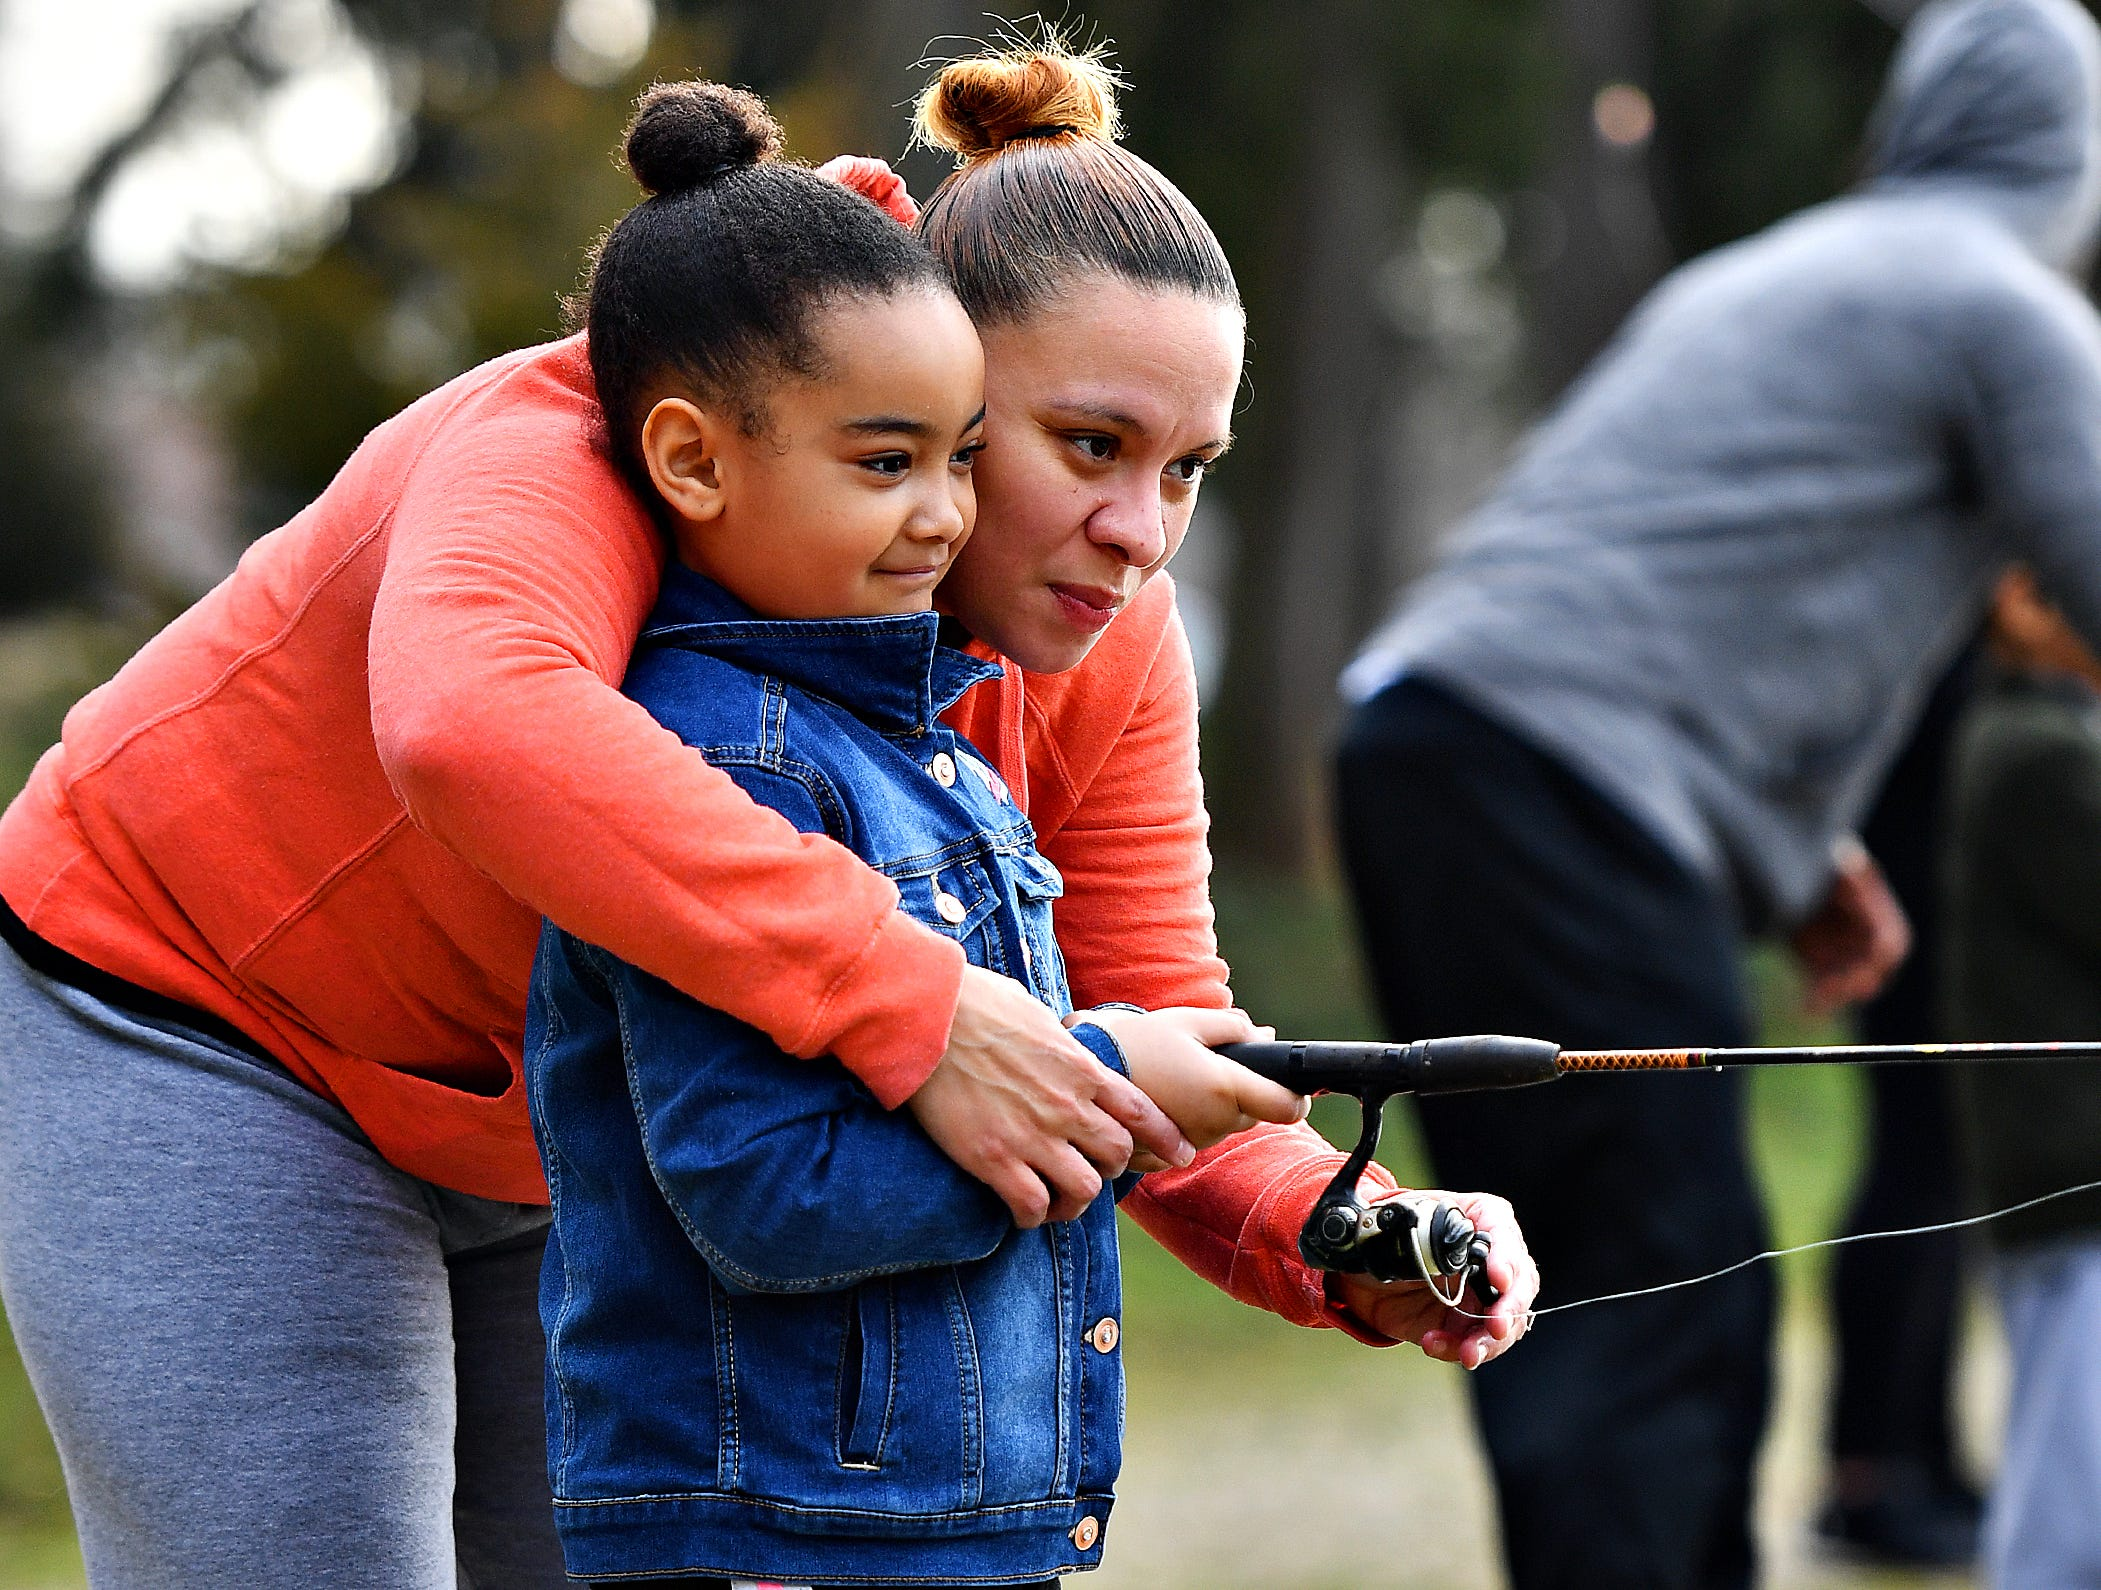 Nancy Moore, back, wraps her arms around her daughter Trinity, 6, as she helps to secure the fishing line during the 21st Annual William Shaffer Trout Fishing Derby at Kiwanis Lake in York City, Saturday, March 30, 2019. Dawn J. Sagert photo